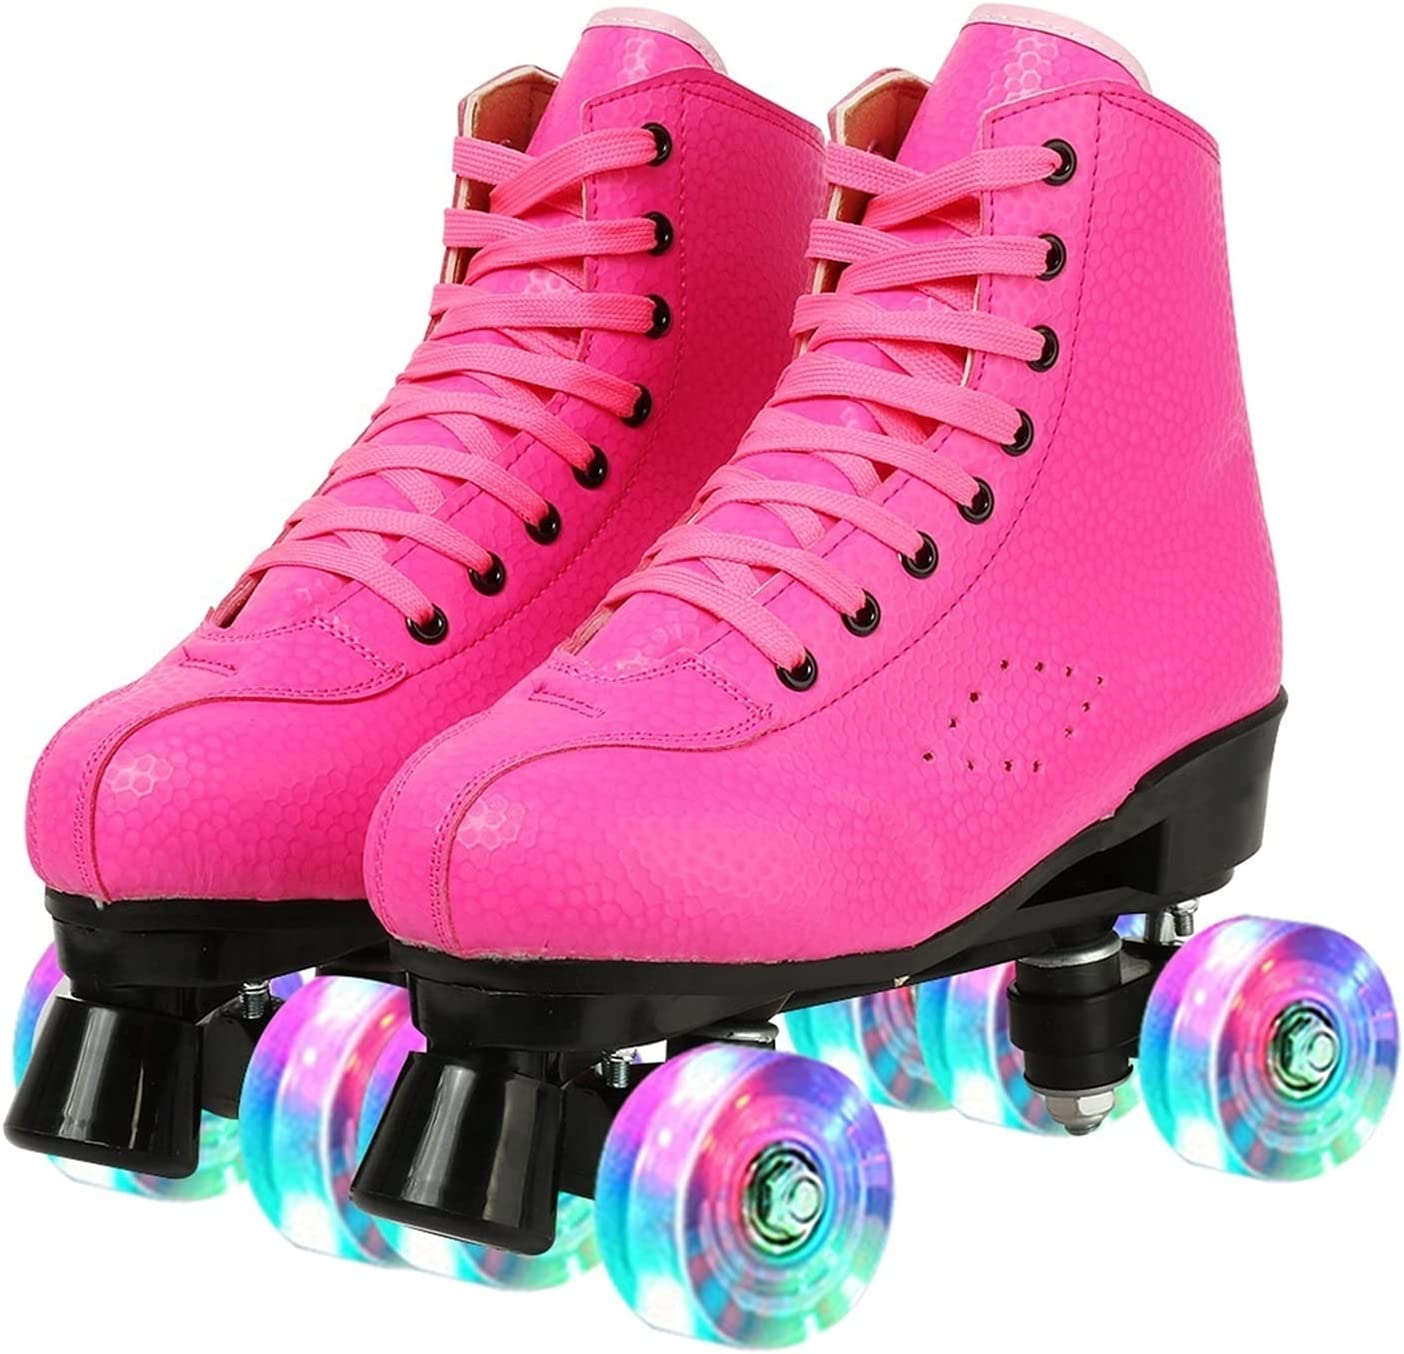 Womens Roller Skates PU F High-top Leather Some reservation Premium 2021 autumn and winter new